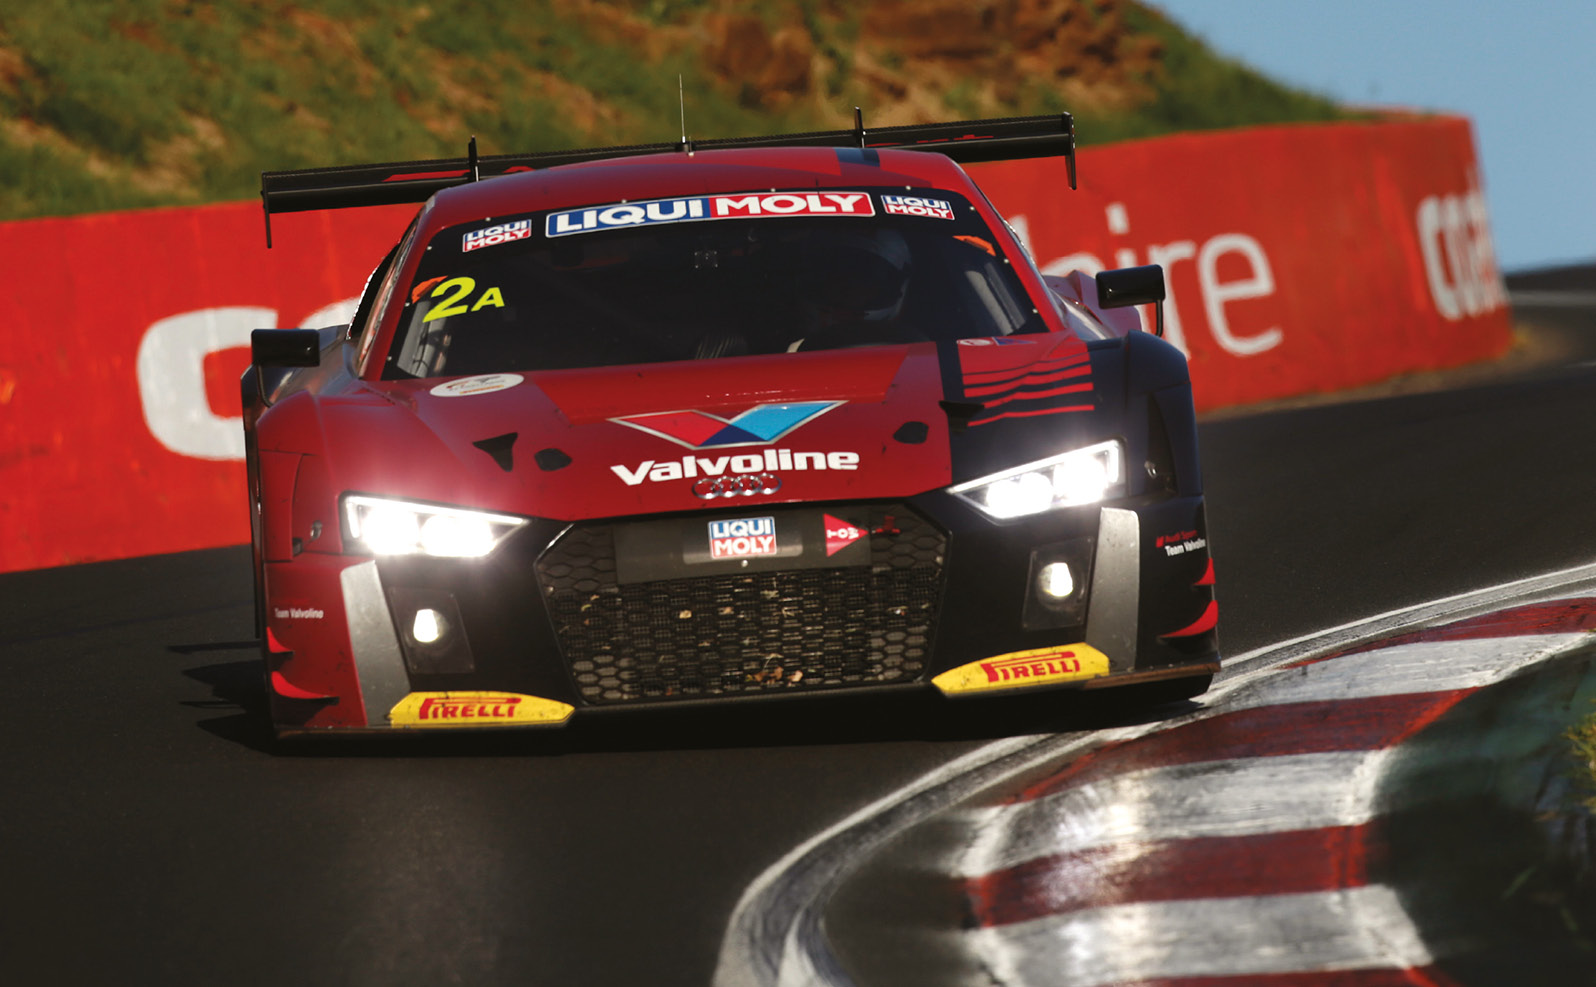 Markus has gone on to be successful in GT3